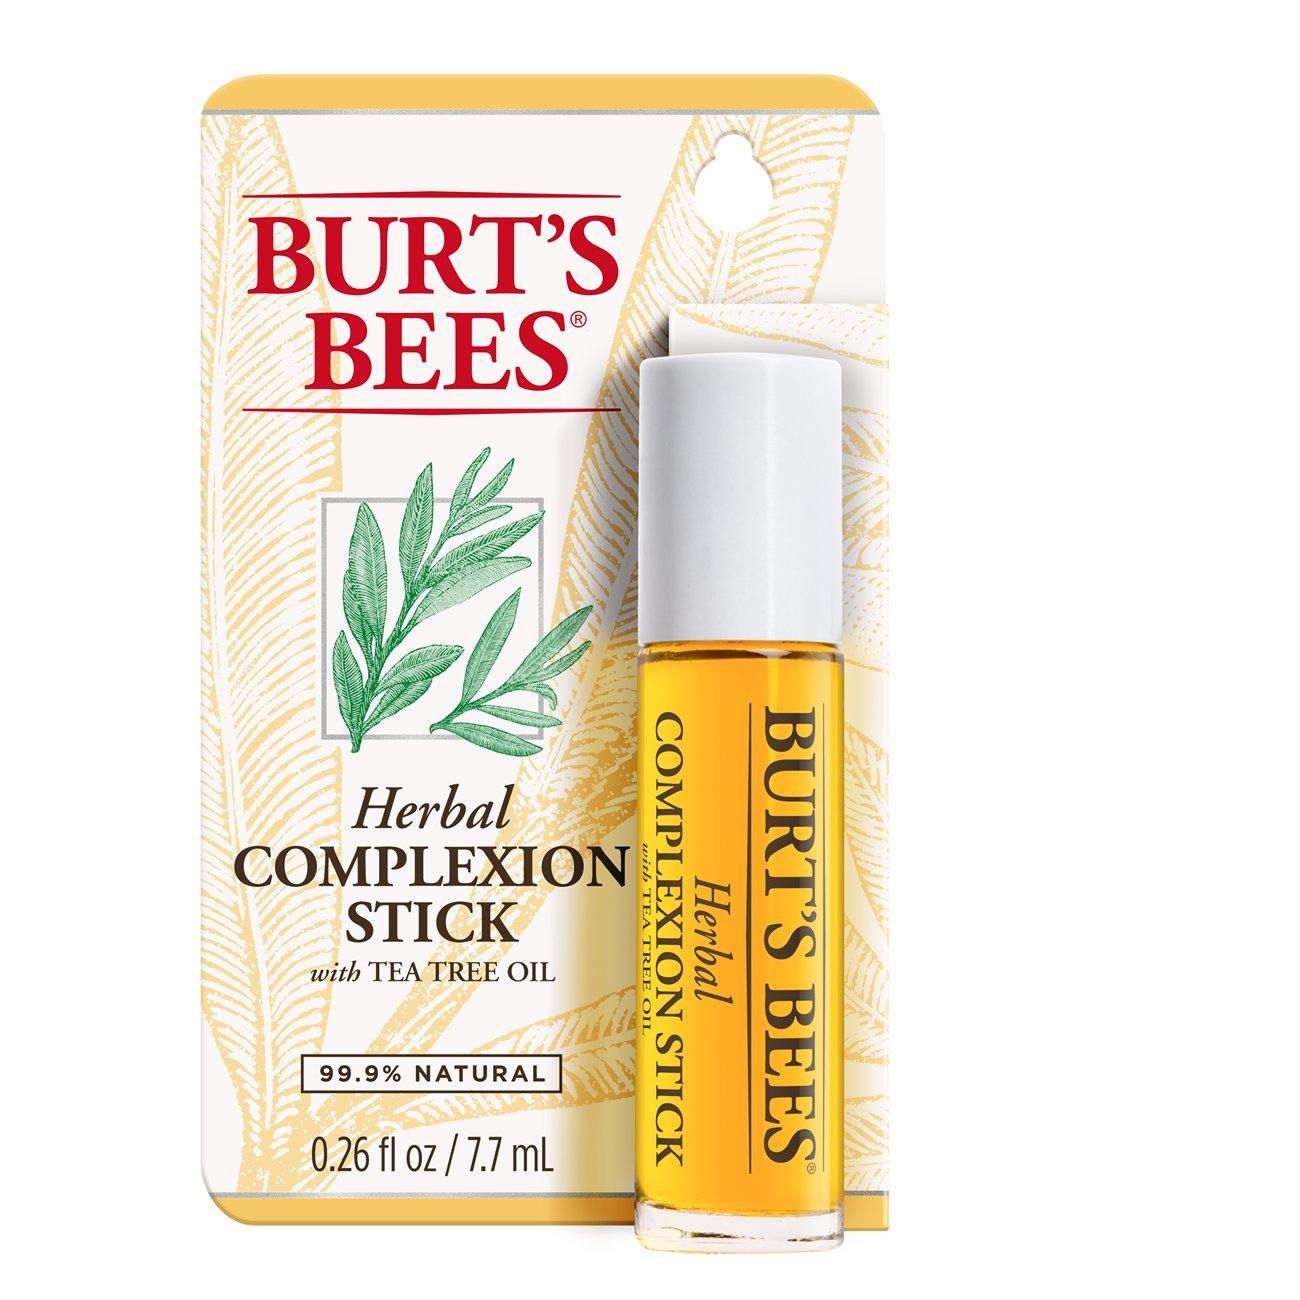 Burt's Bees Herbal Complexion Stick (Pack of 2)